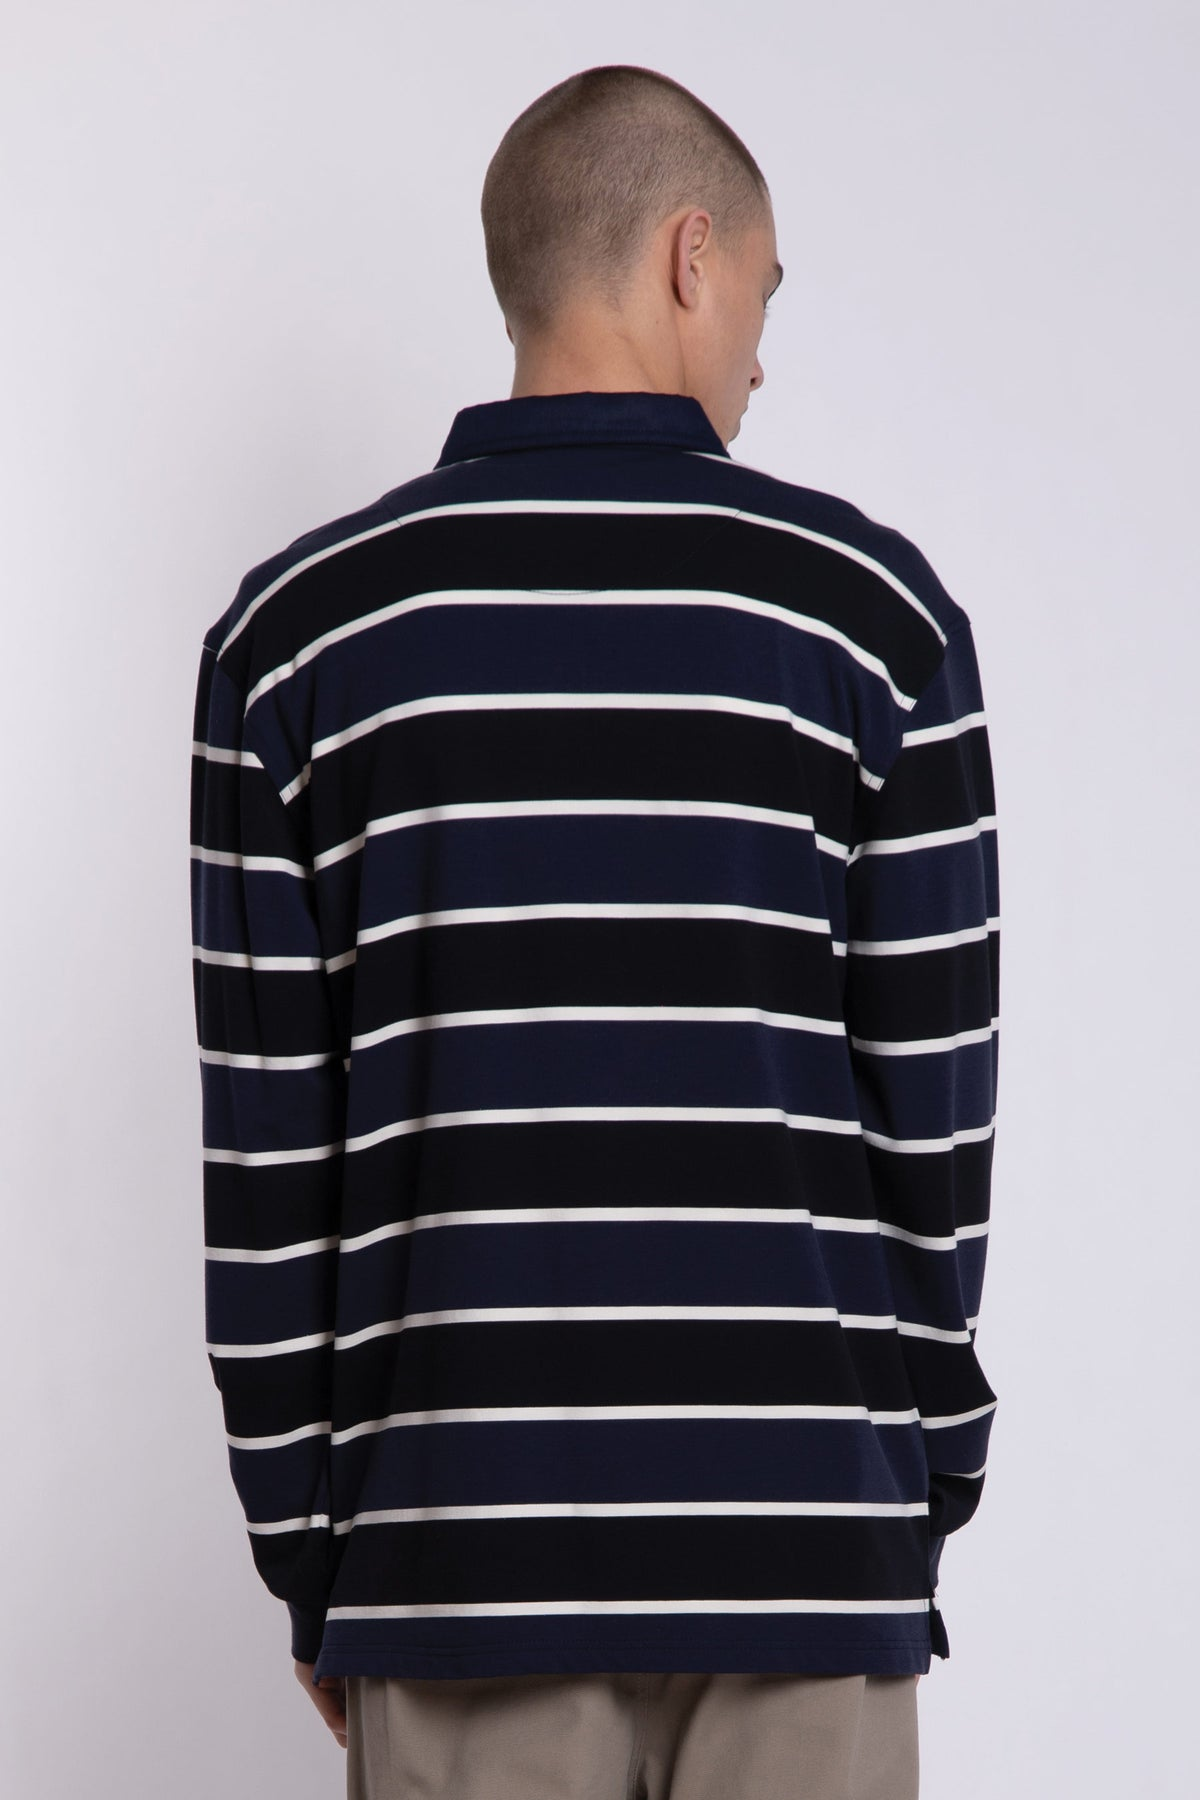 Eurlo Street Polo - Navy/White/Black